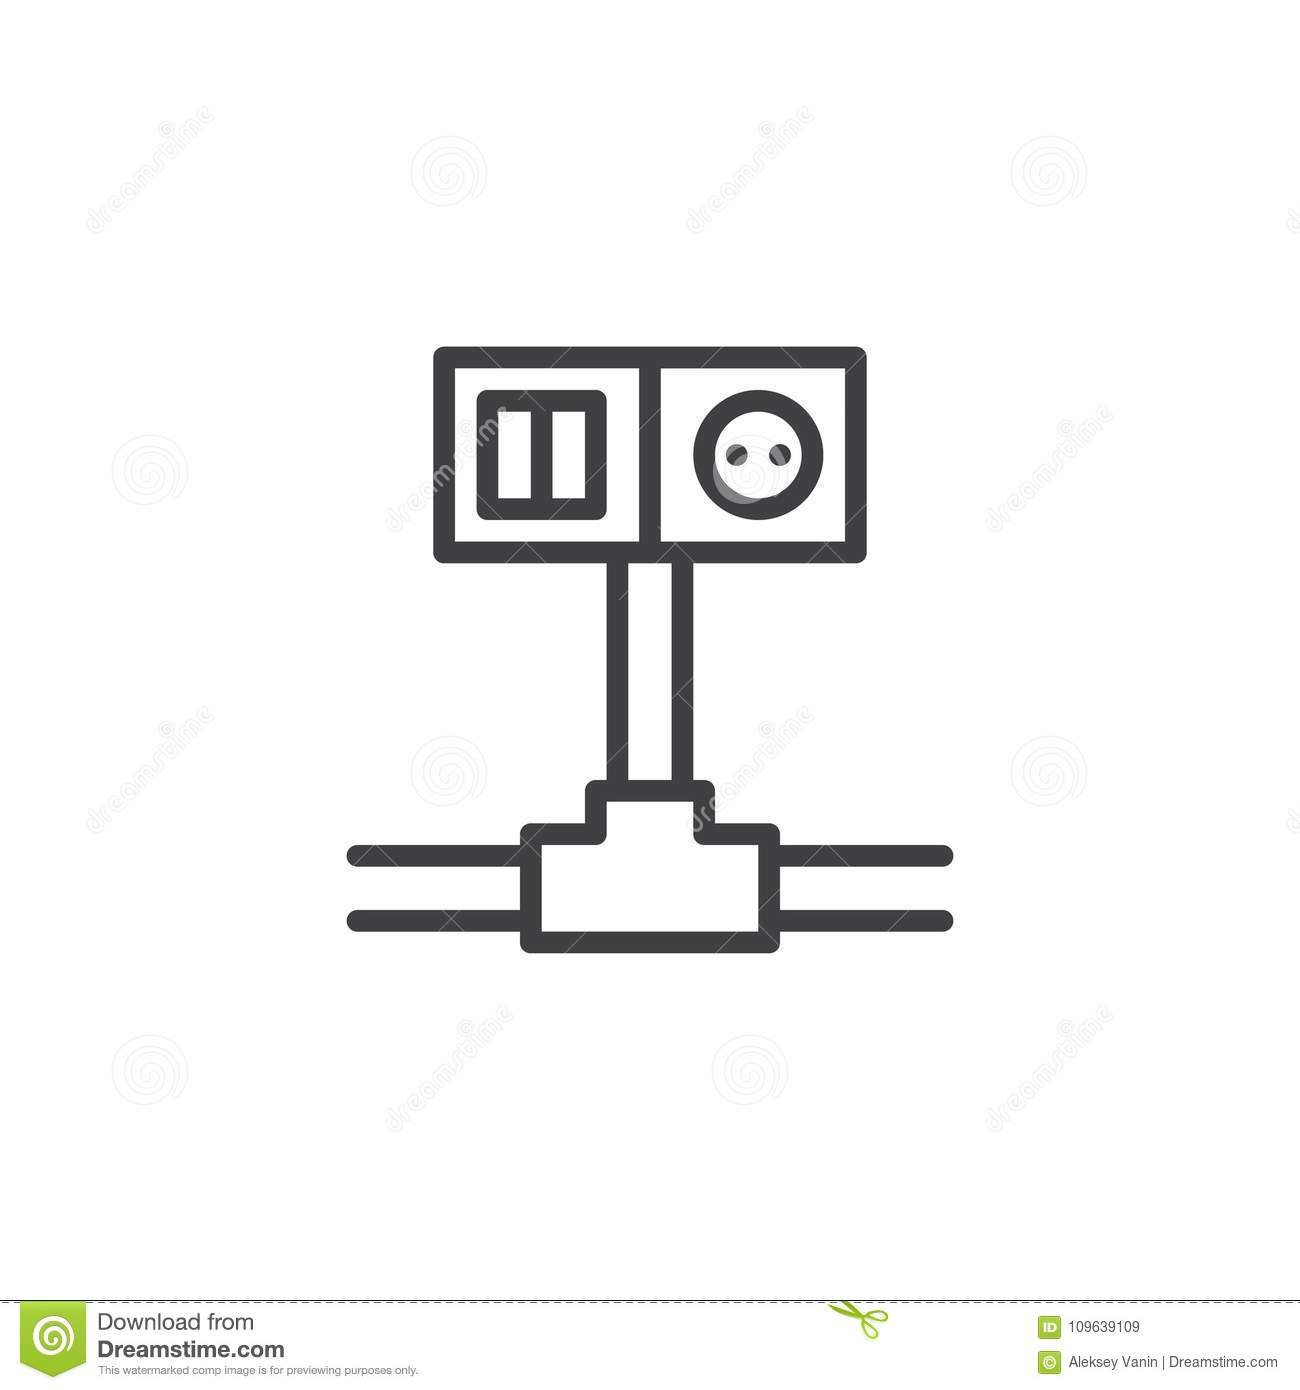 Wiring Switch And Socket Line Icon Stock Vector